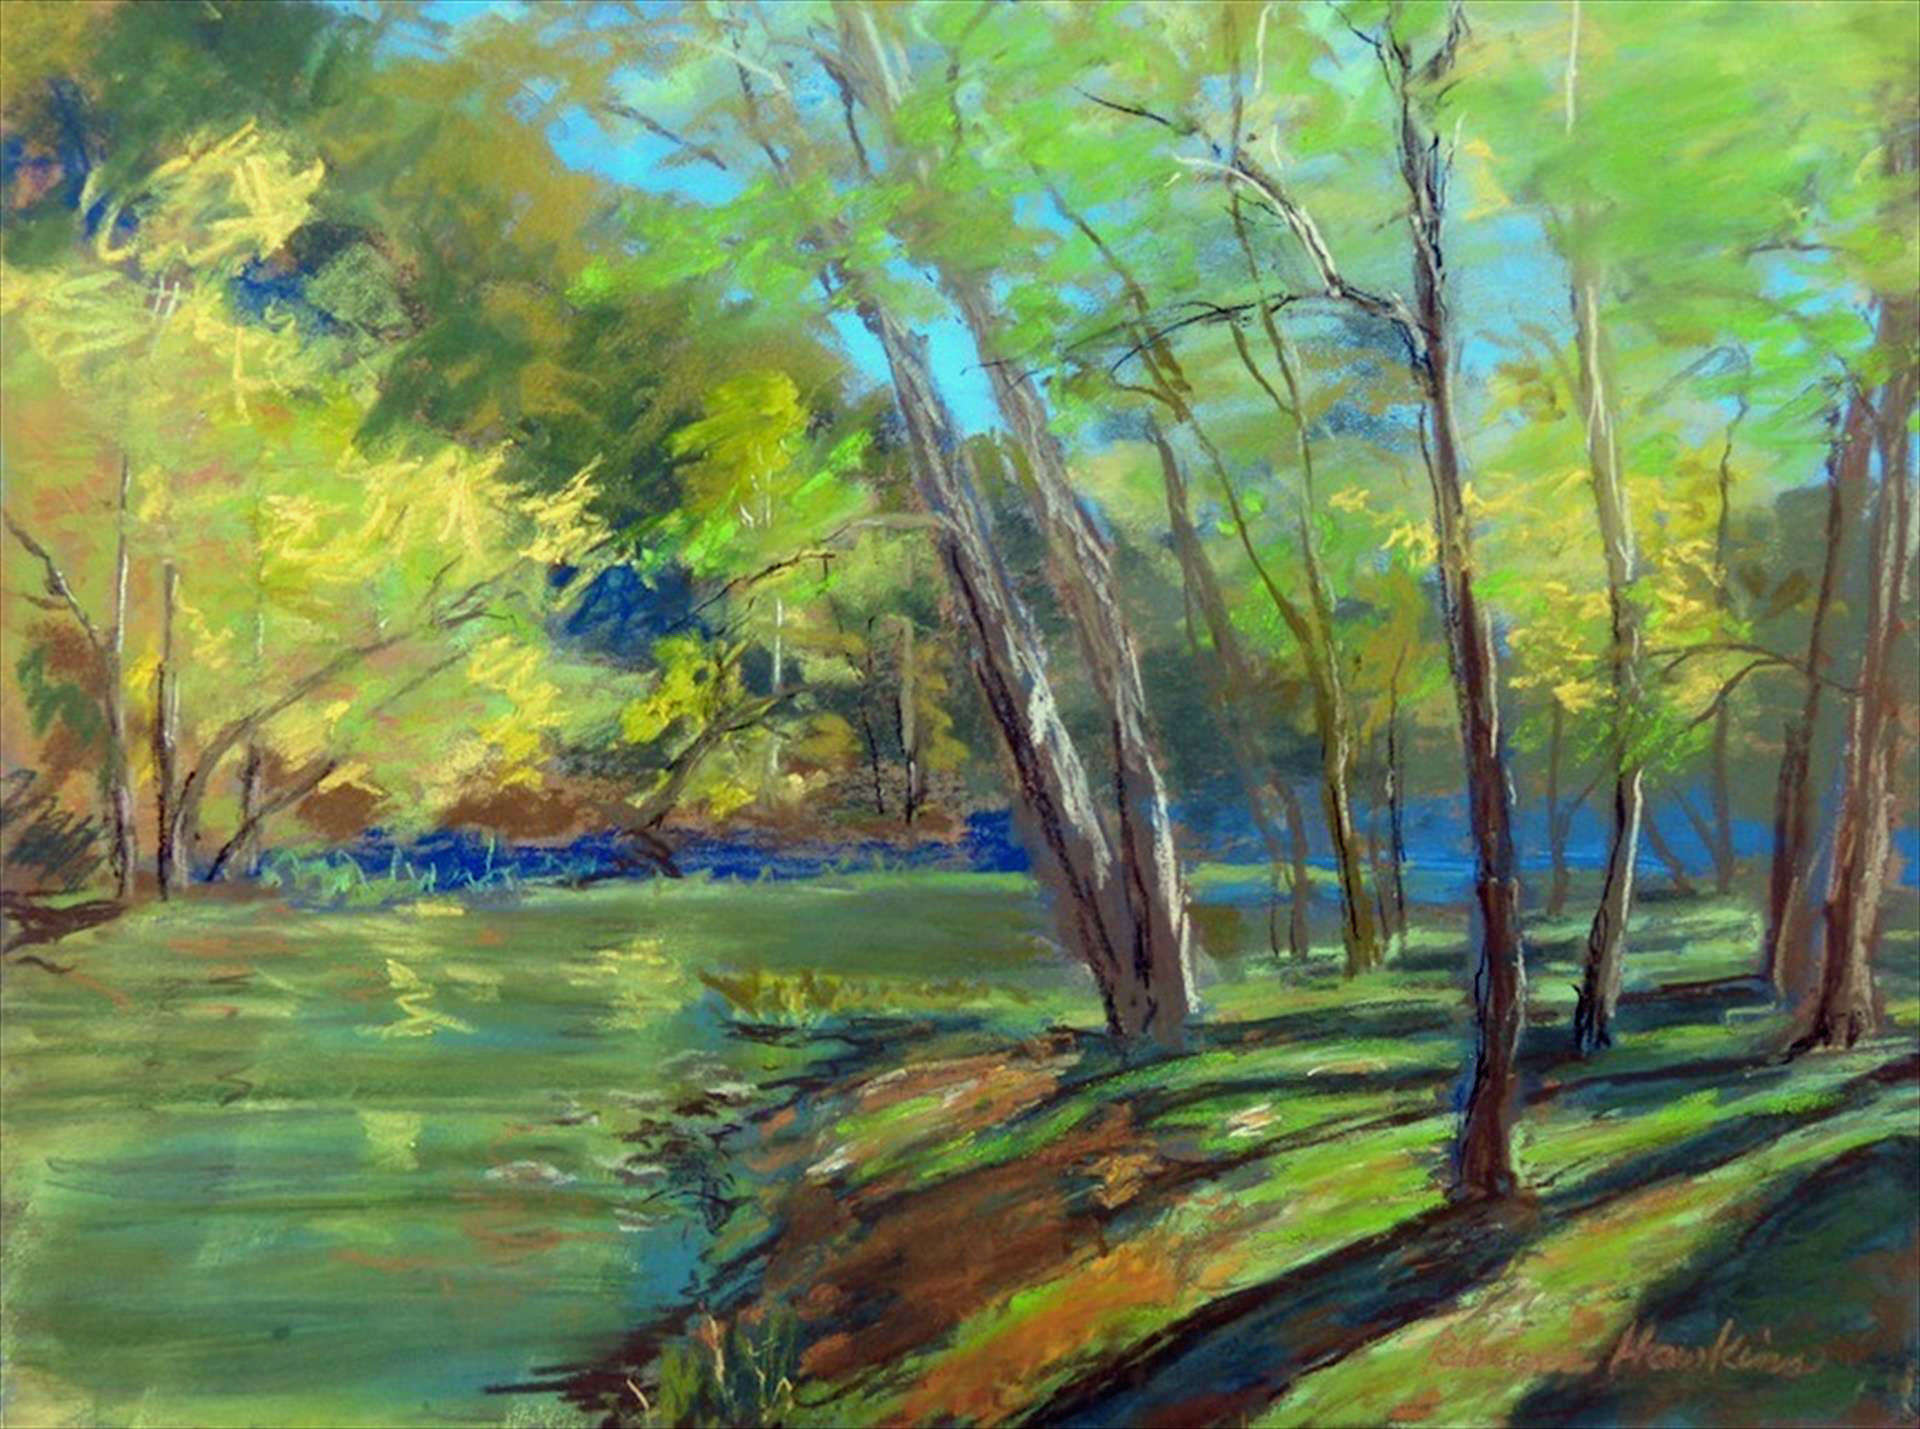 Becky Hawkins | BEAVER CREEK STATE PARK, AFTERNOON SHADOWS | soft pastel | frame size 17x20